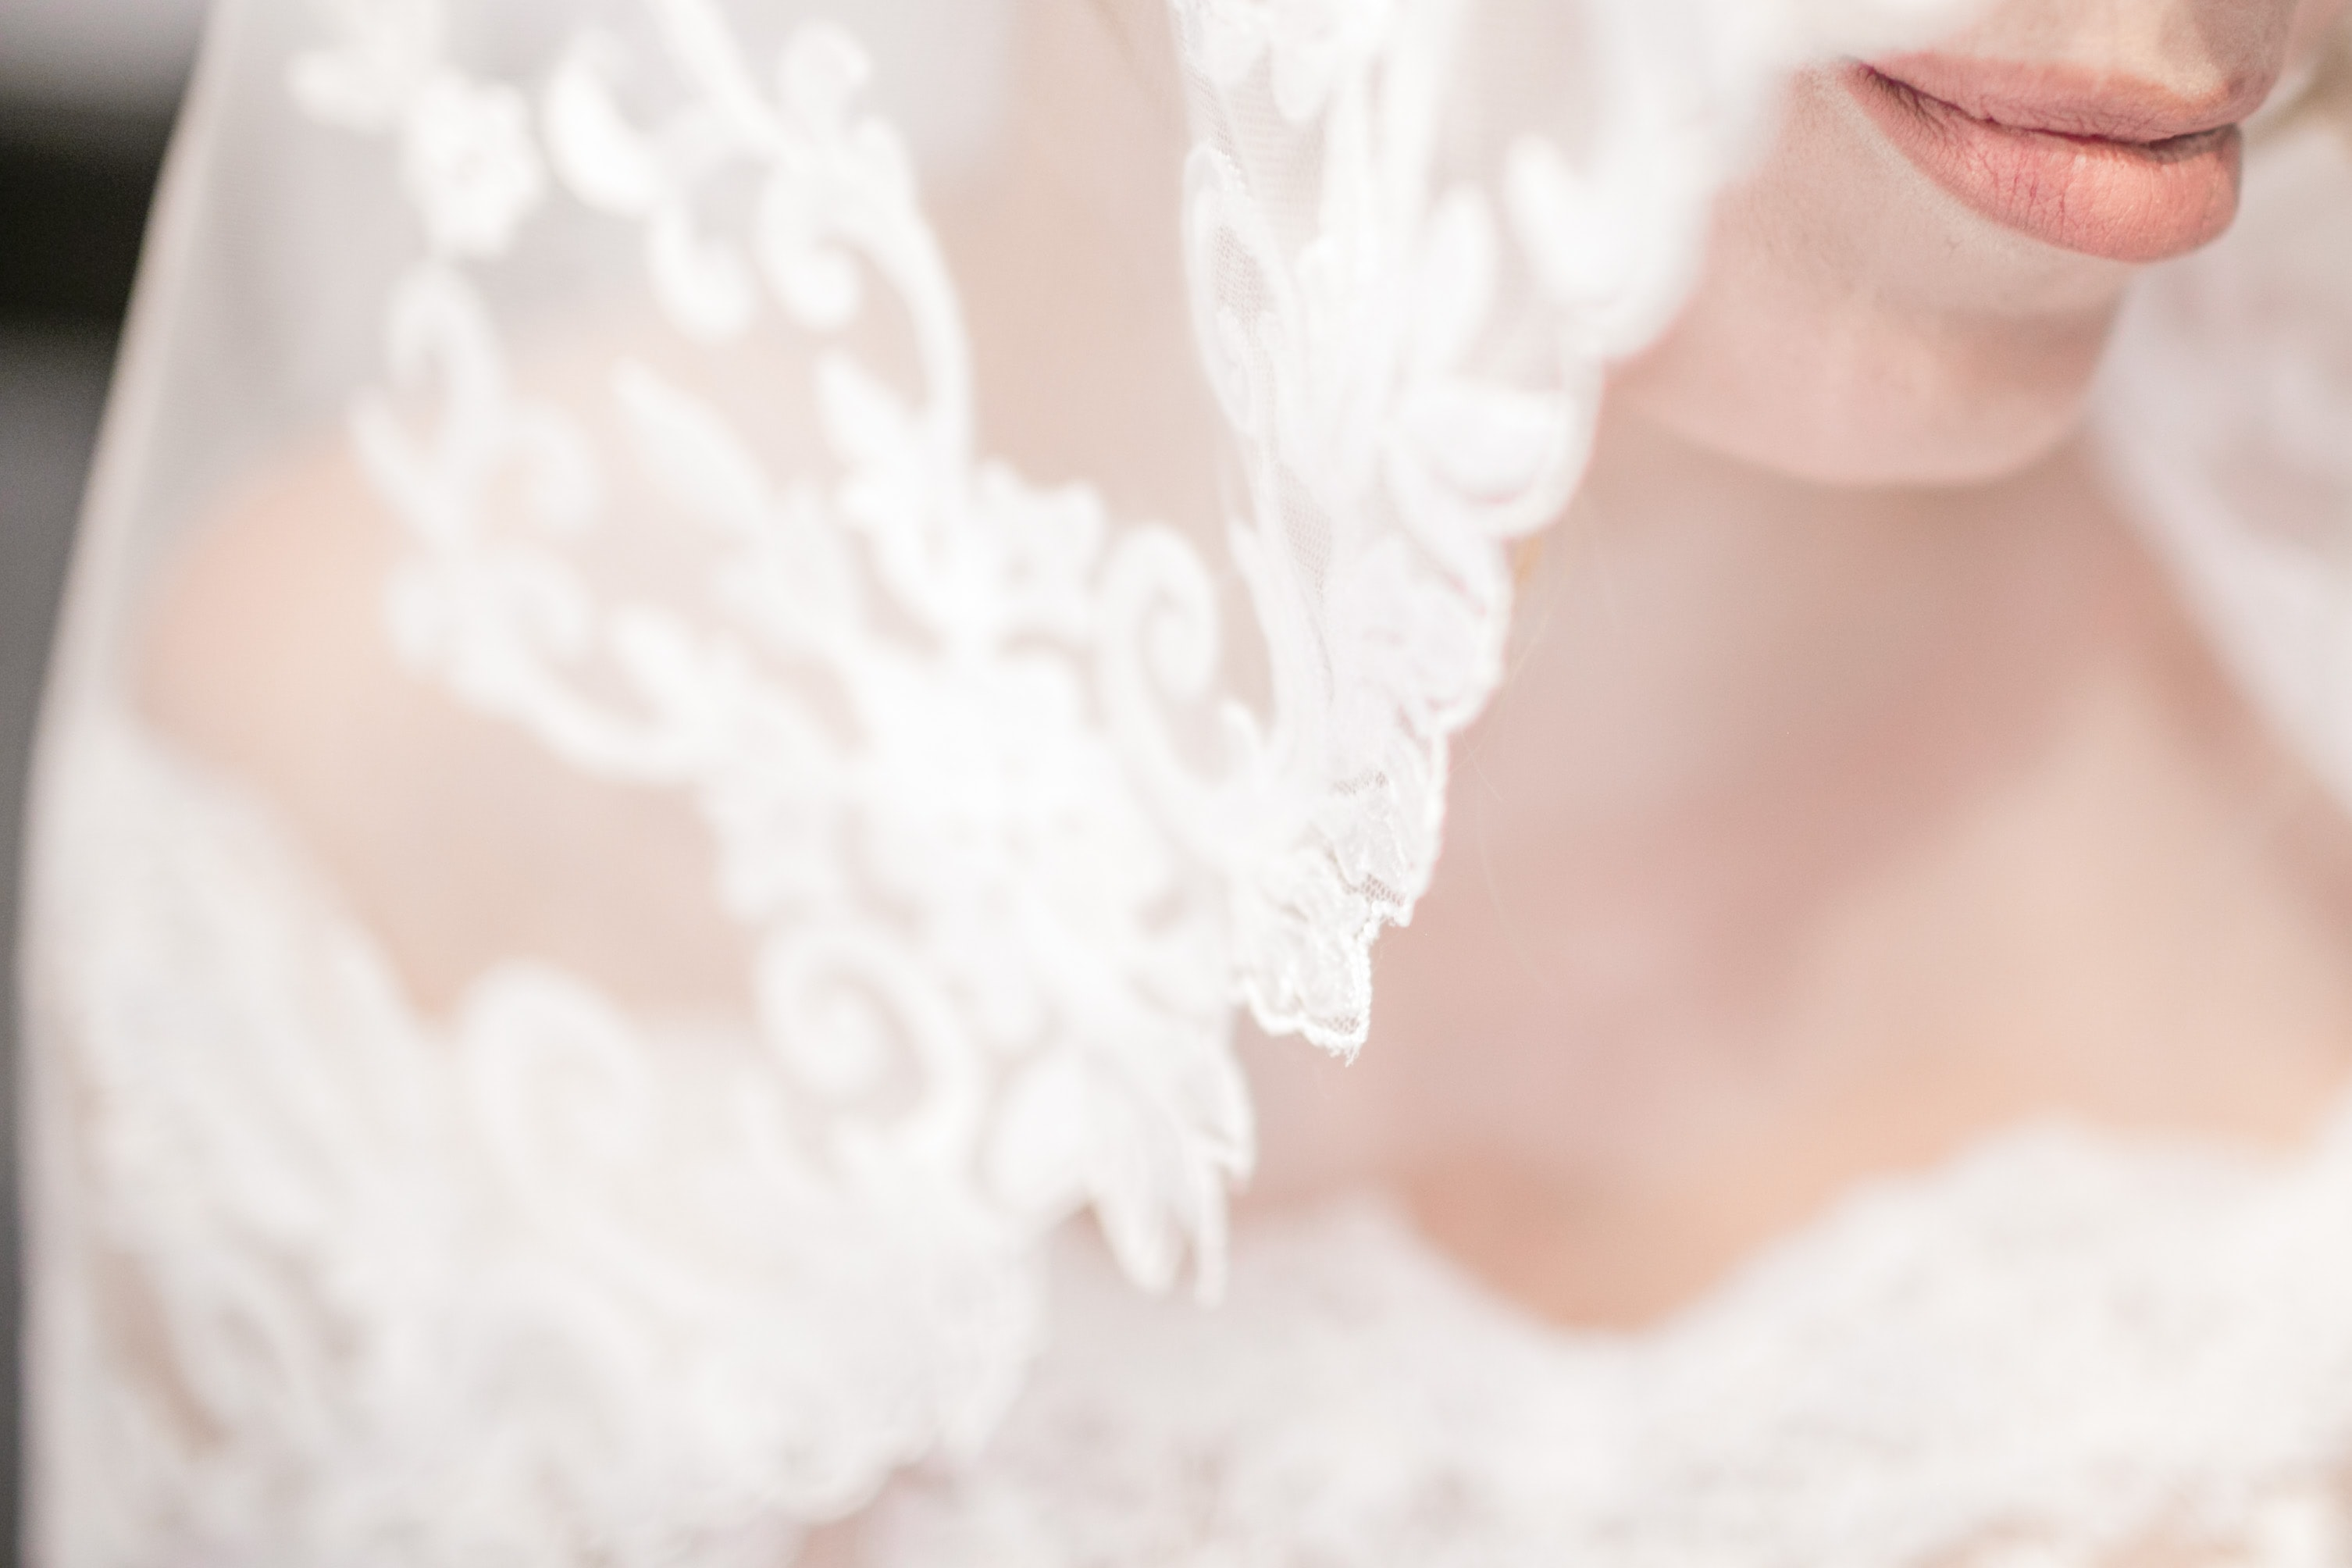 Bride's lace veil and nude lips along with her strapless wedding dress